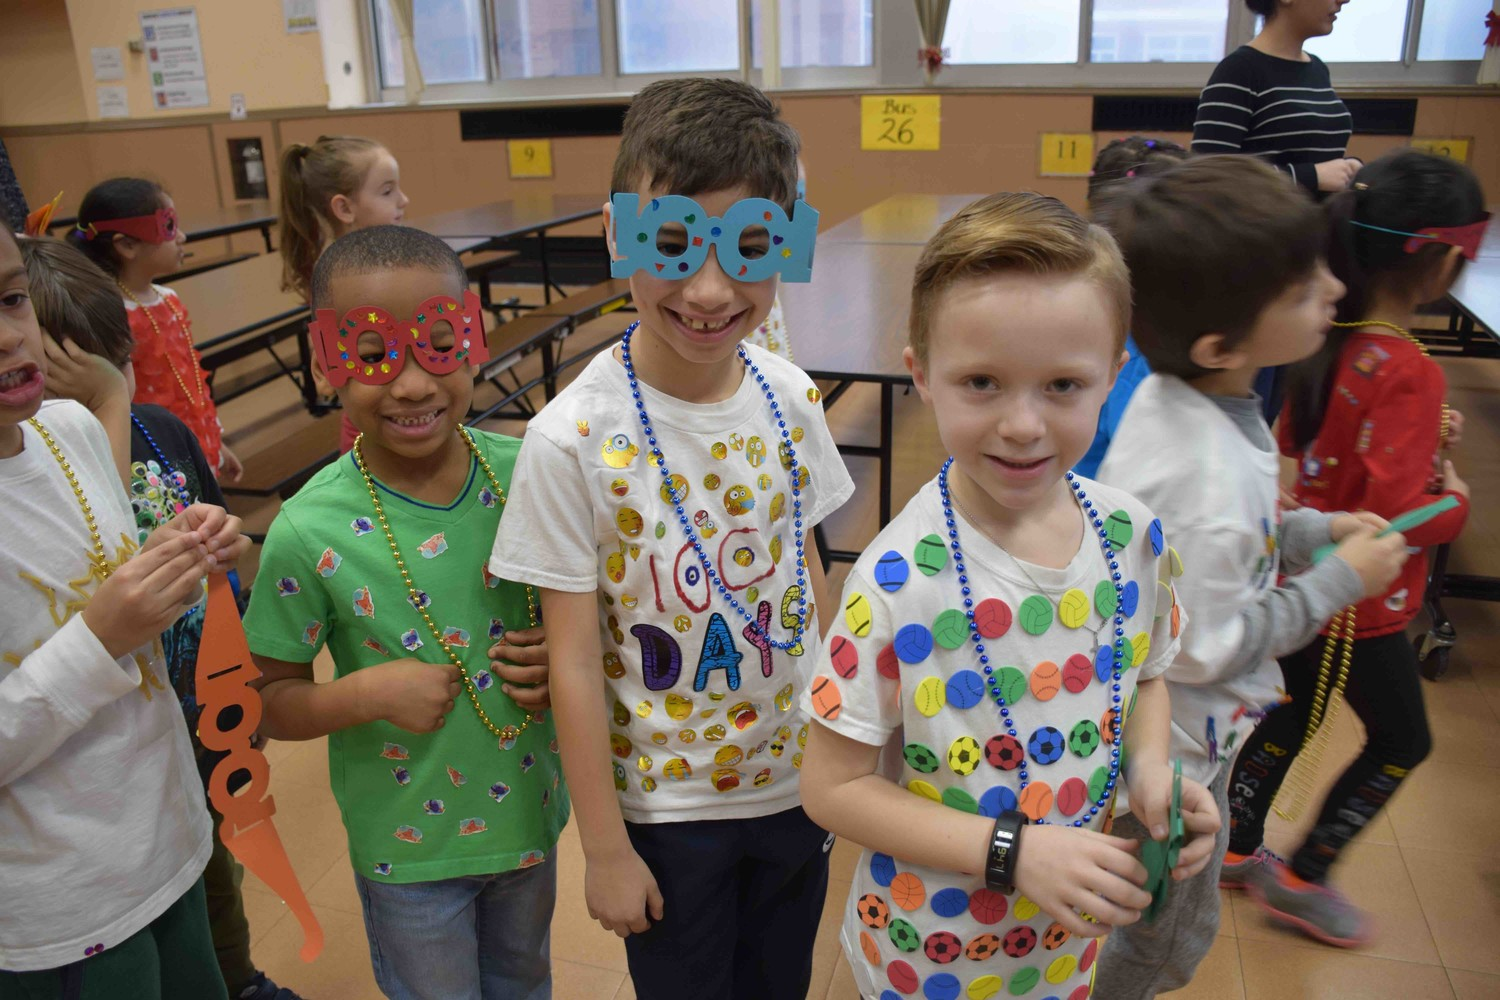 Barnum Woods Elementary School kindergartners accessorized their own shirts and glasses with the number 100 to signify the 100th day of school.